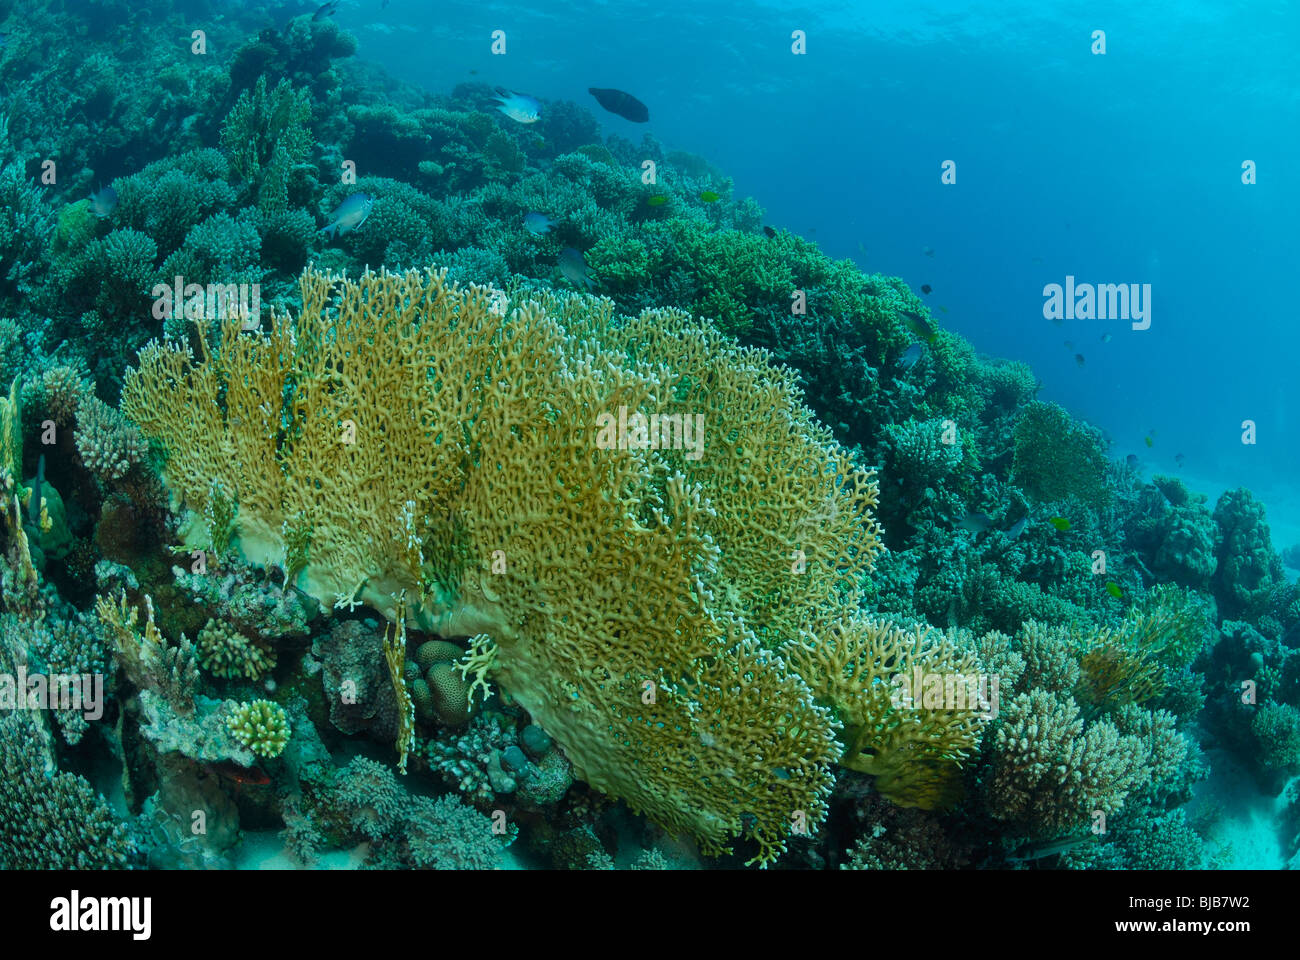 Fire coral in the Red Sea, off Hurghada, Egypt. - Stock Image